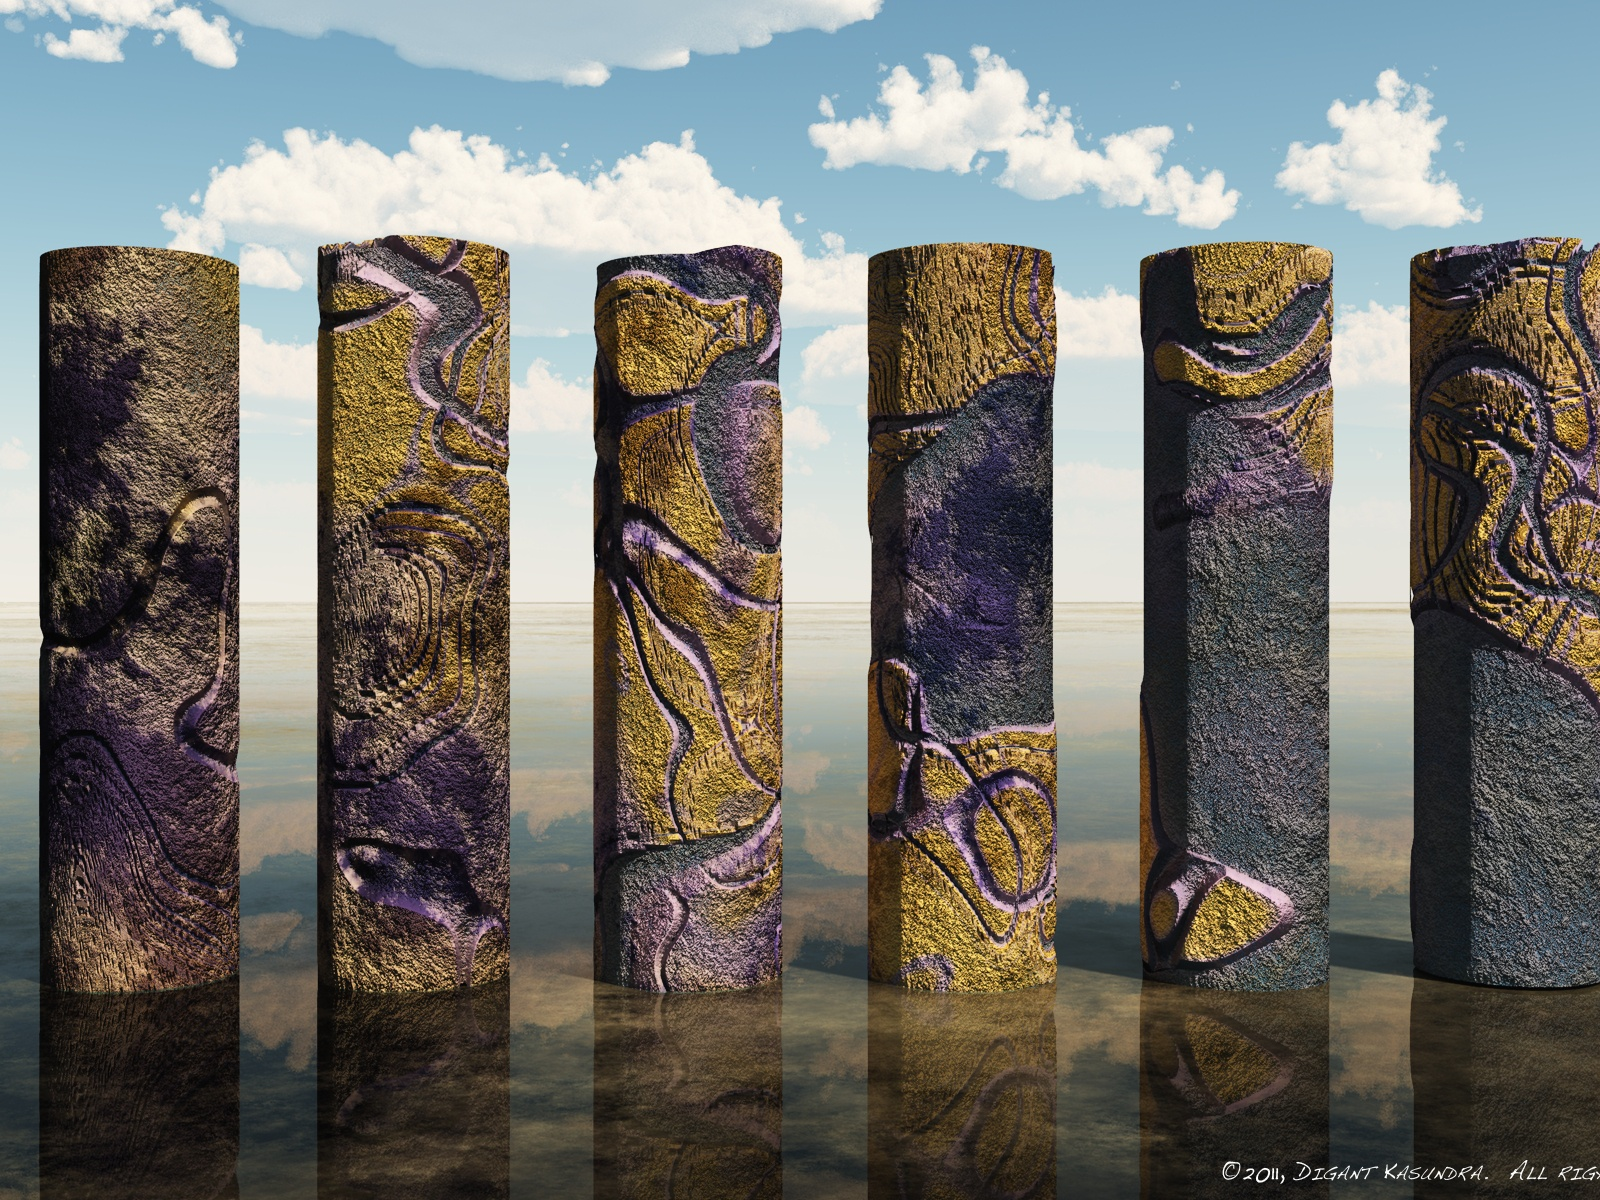 click to free download the wallpaper--Beautiful Scenery Wallpaper, a Line of Colorful Alien Pillars, Majestic Look  1600X1200 free wallpaper download